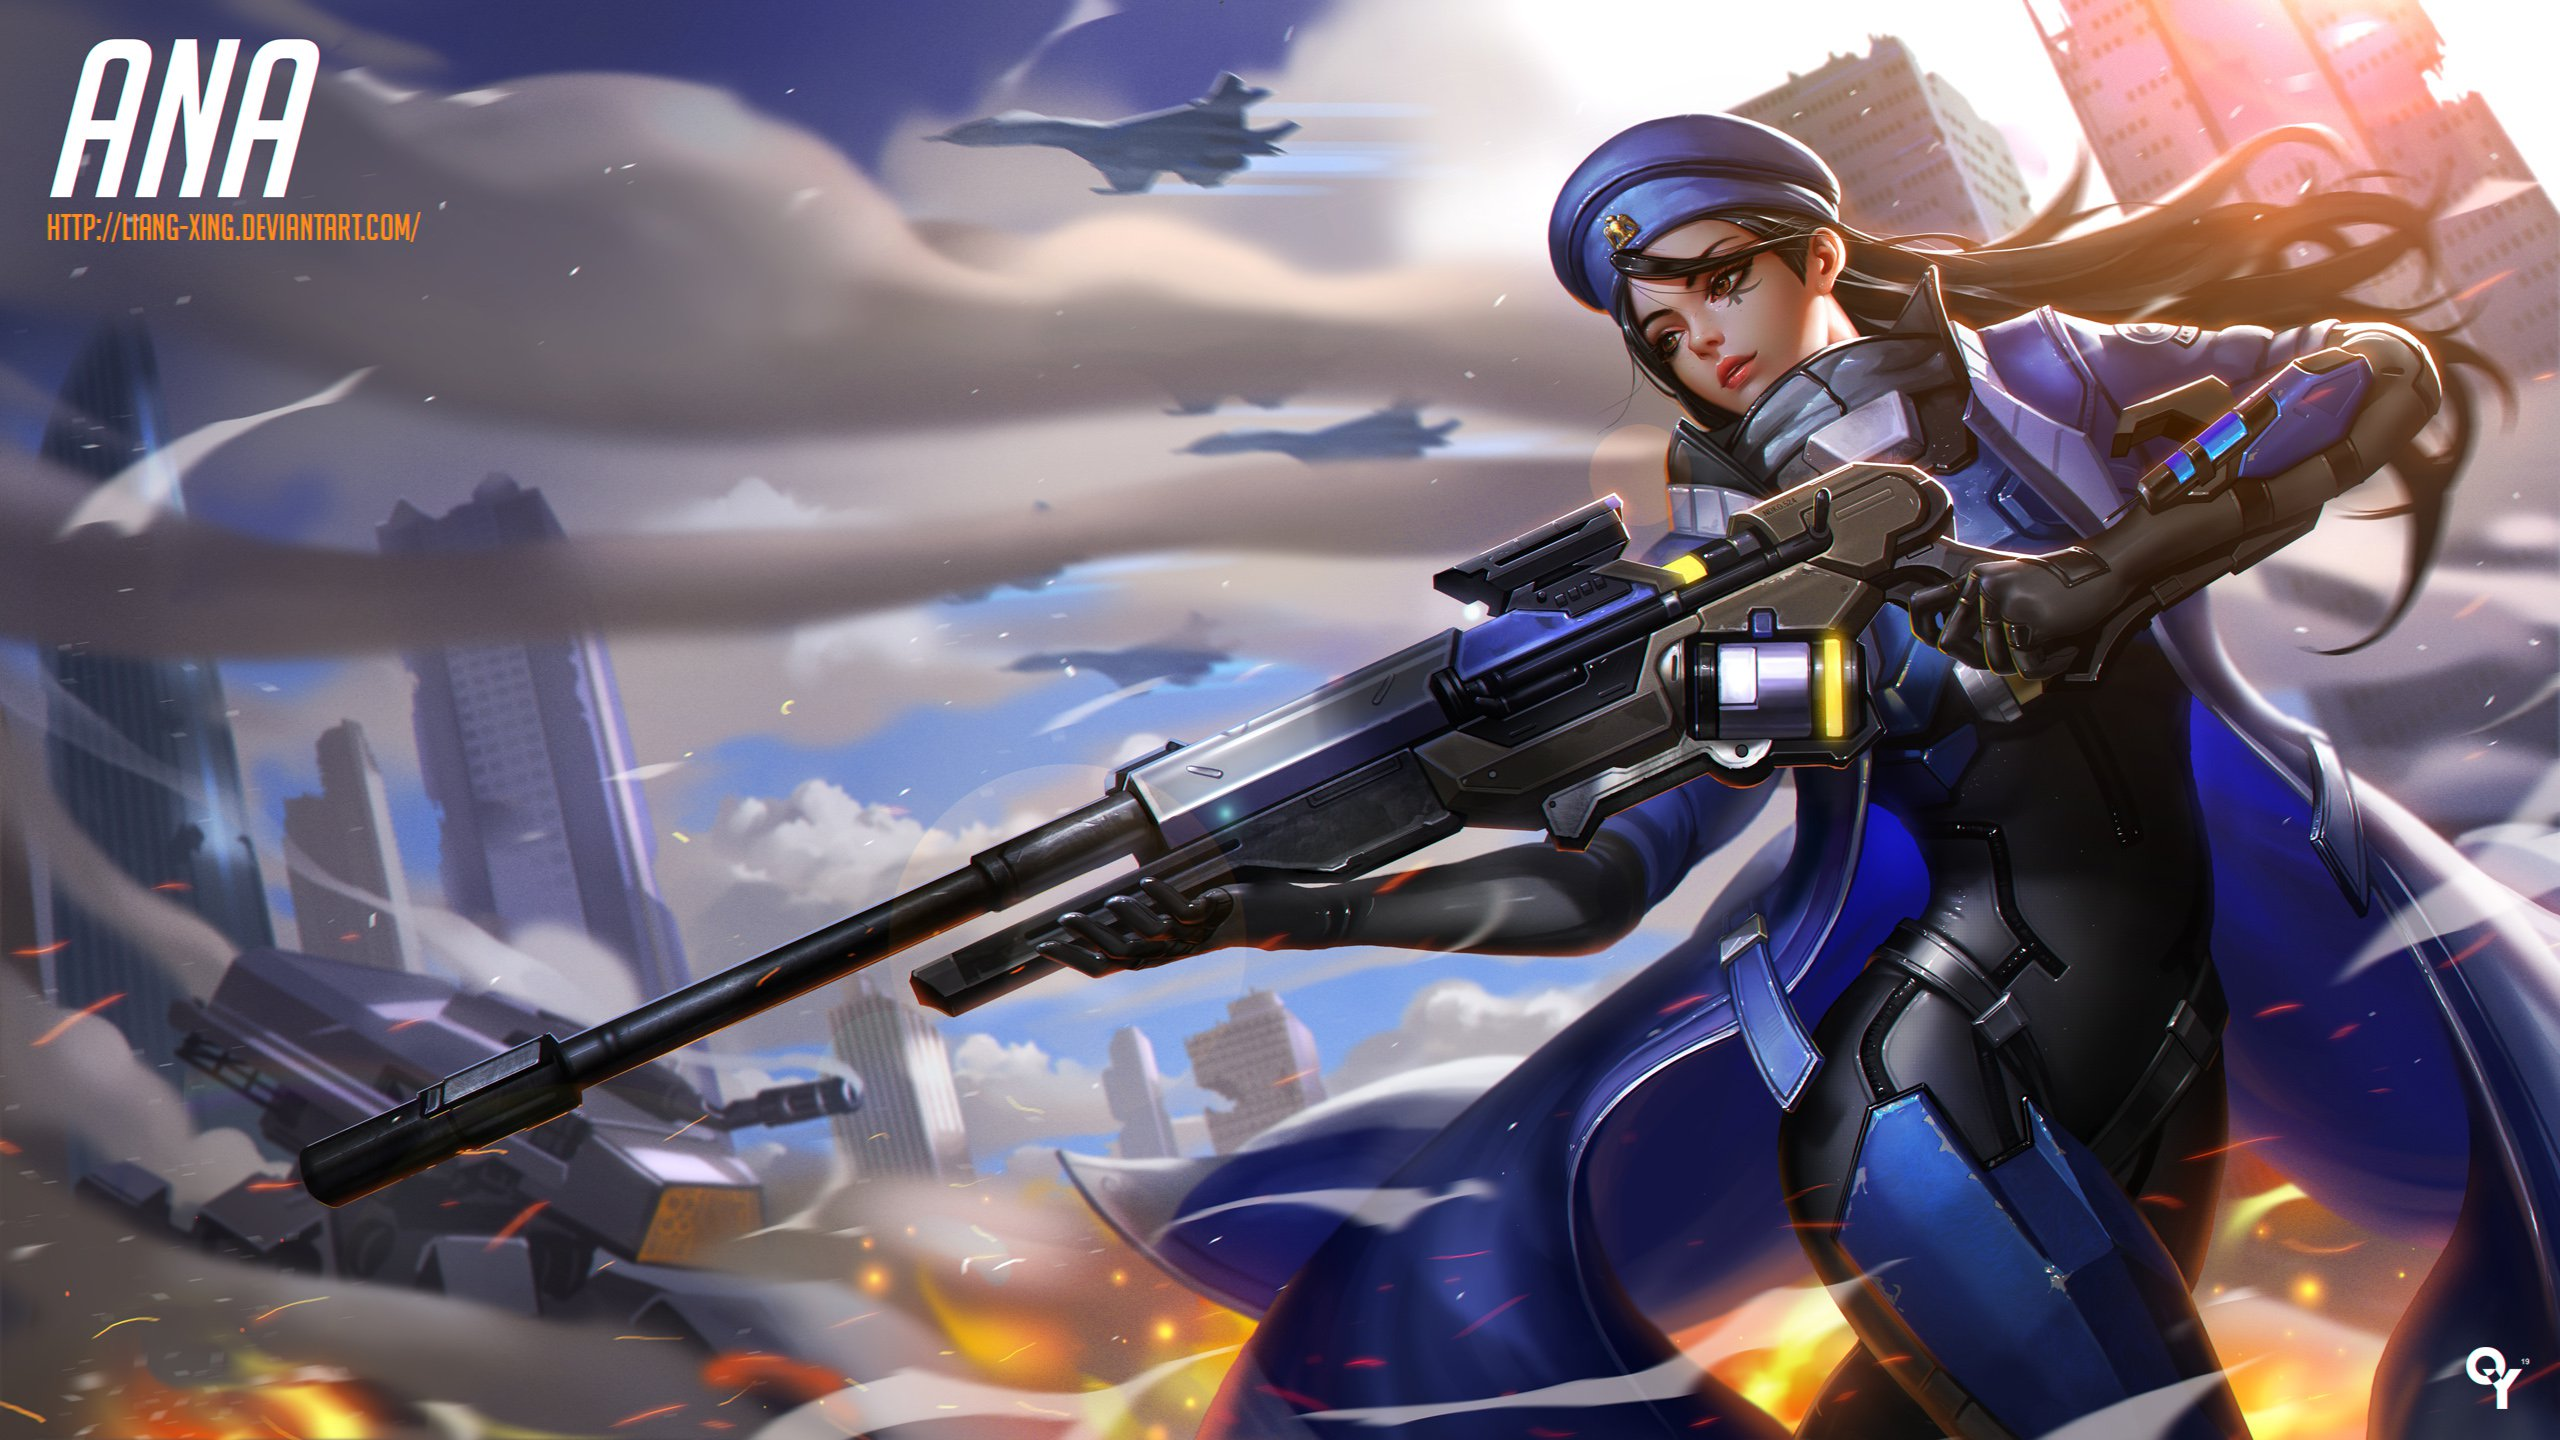 Ana Overwatch Hd High Definition Wallpaper